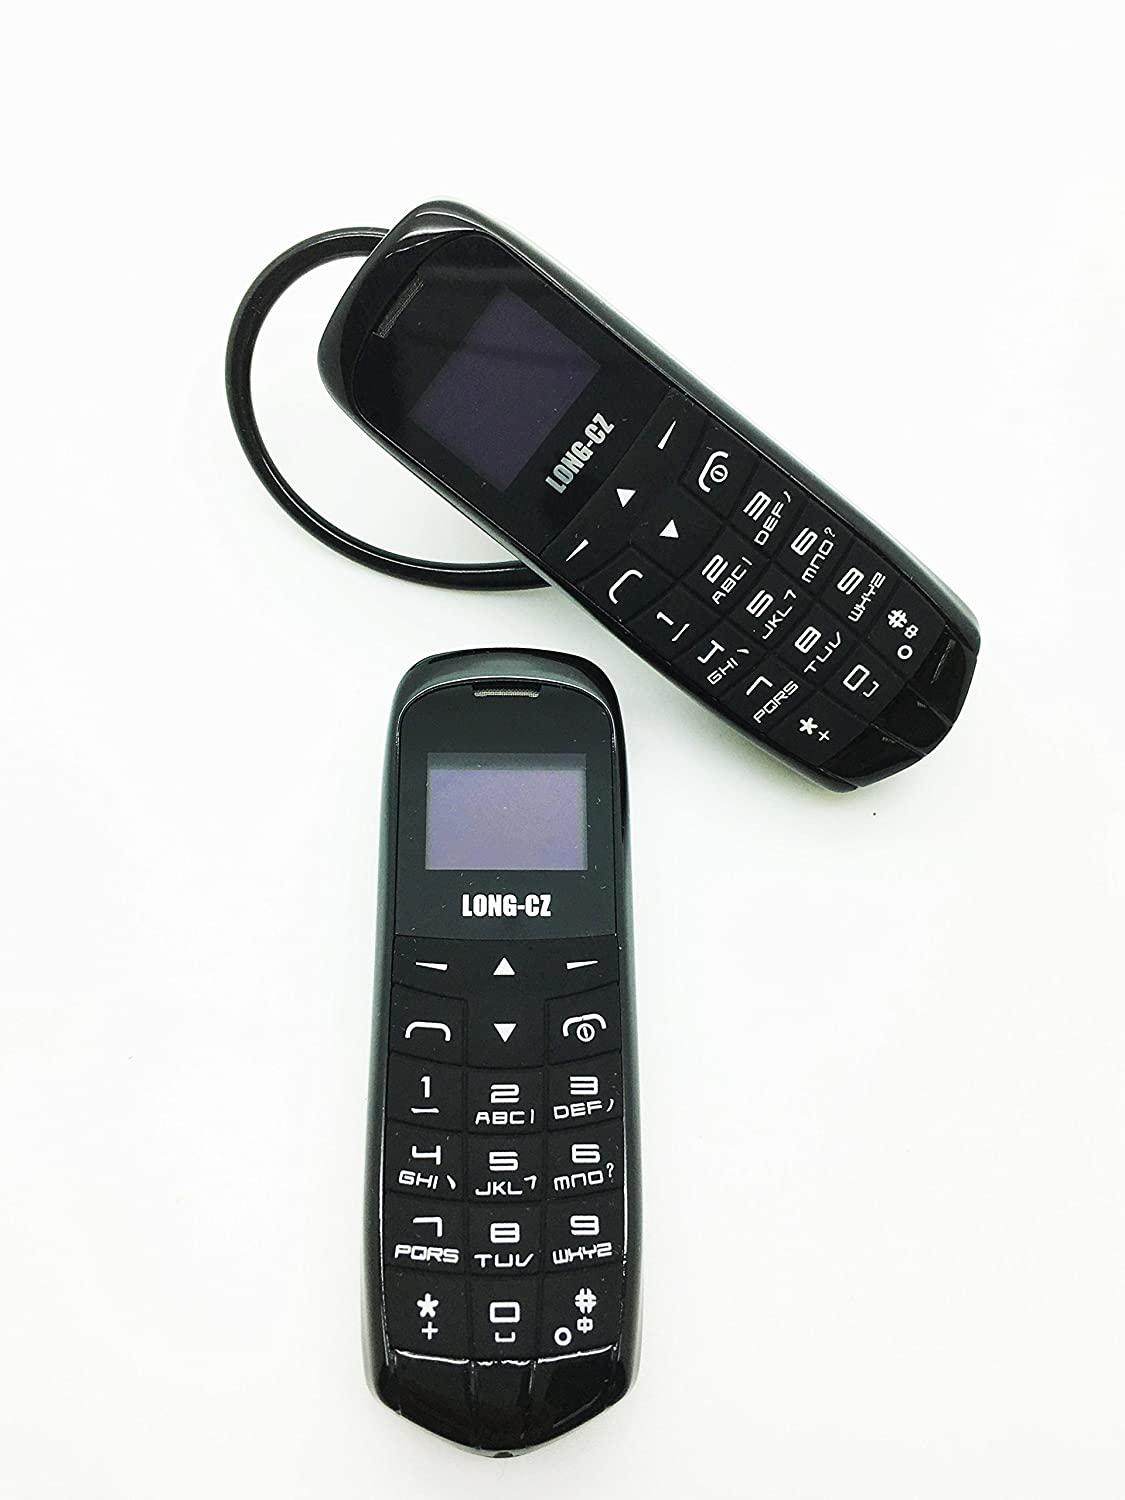 3in1 J8 World Smallest Mobile Phone Newest model with voice changer